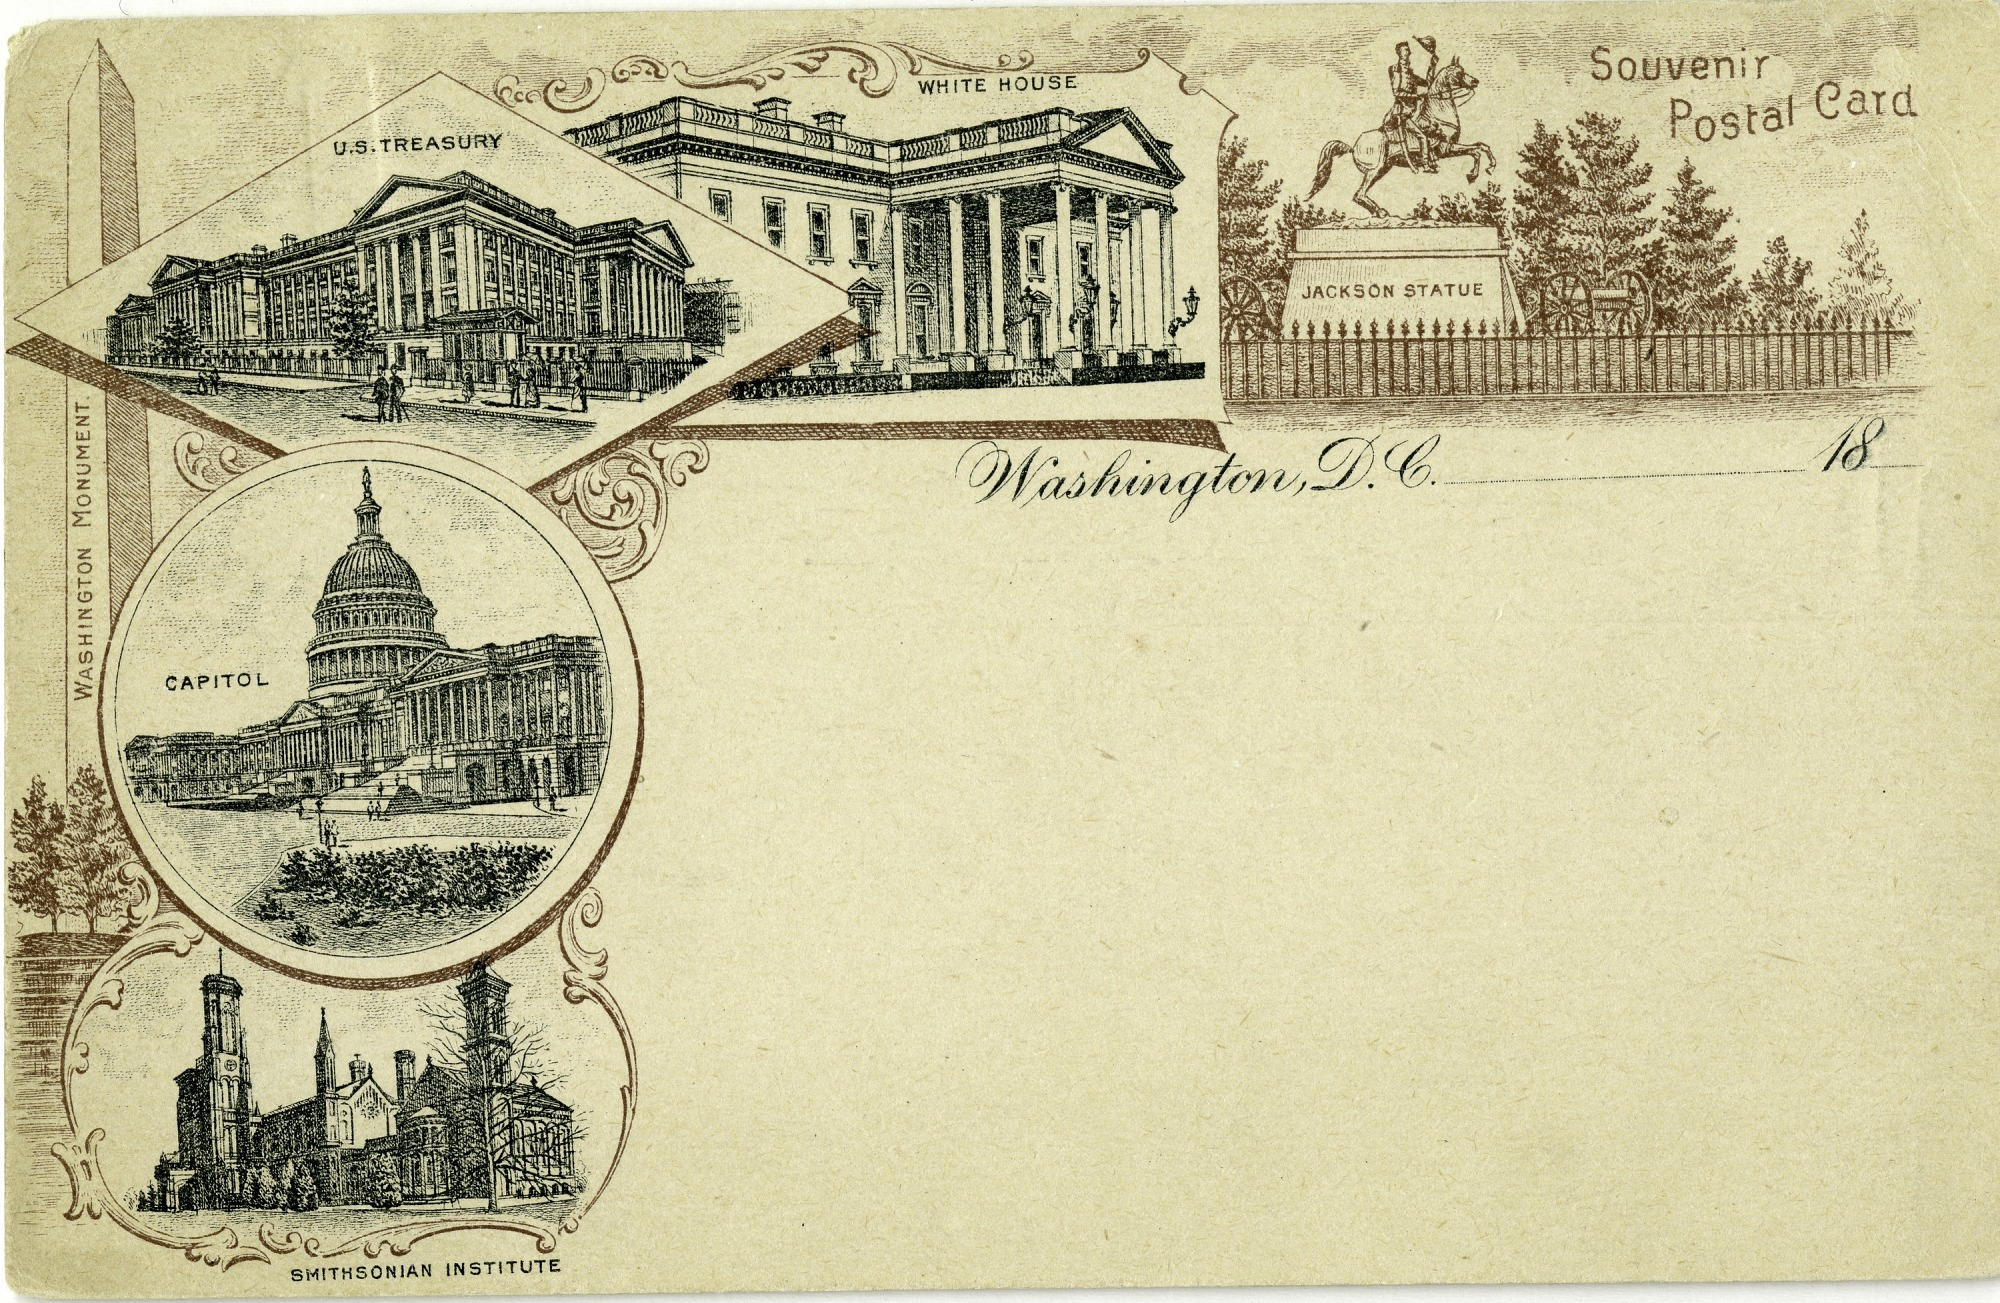 Postcard of Notable Sites in DC, by United States Government Printing Office, c. 1886-1898, Smithsonian Archives - History Div, SIA2013-01127 (front) and SIA2013-01128 (back).